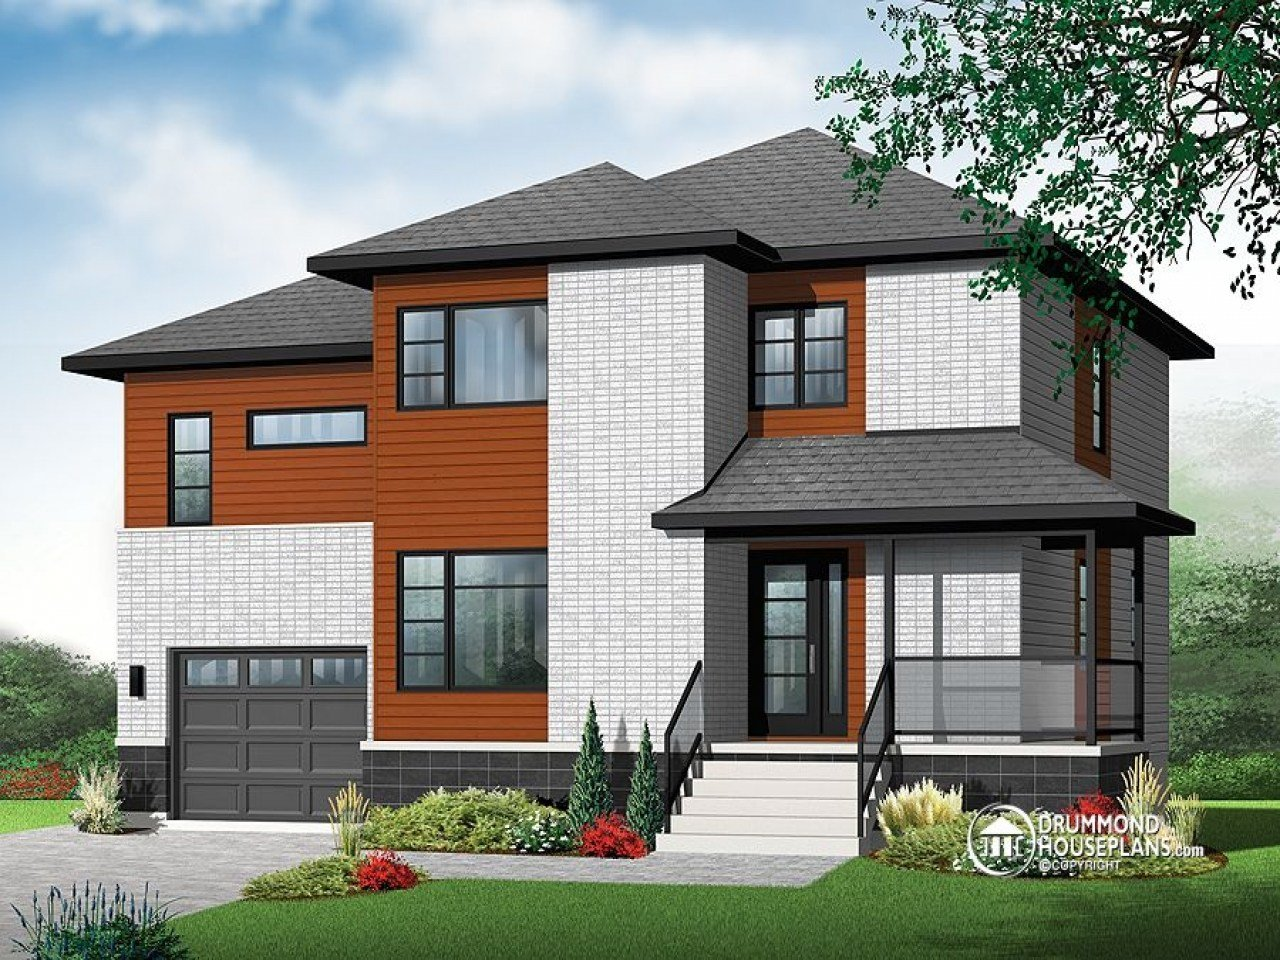 Best House Plans With Bedrooms Upstairs 2 Bedroom House Simple With Pictures